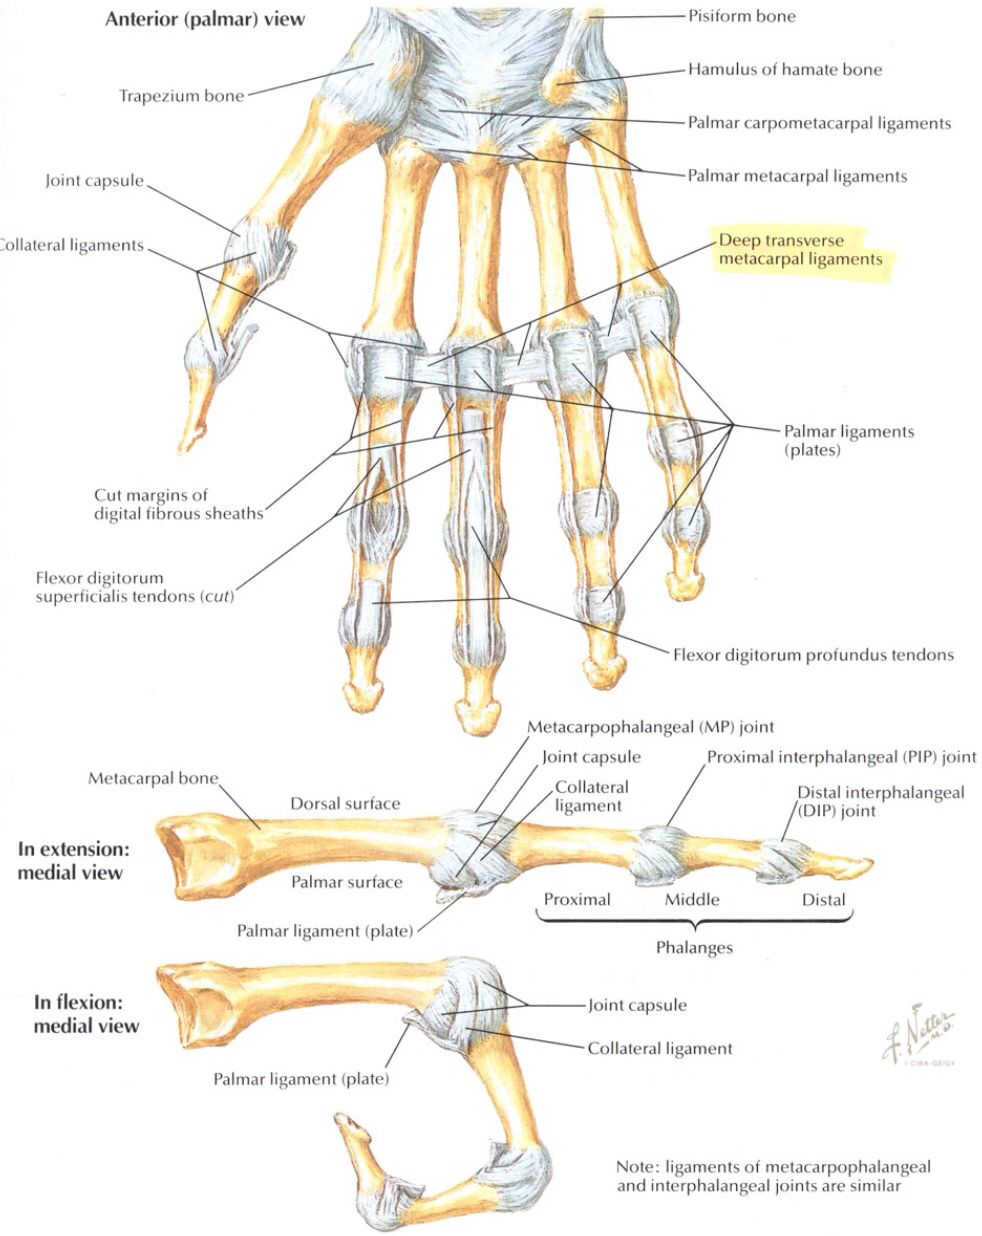 Bones and ligaments of the fingers | Anatomy | Pinterest | Anatomy